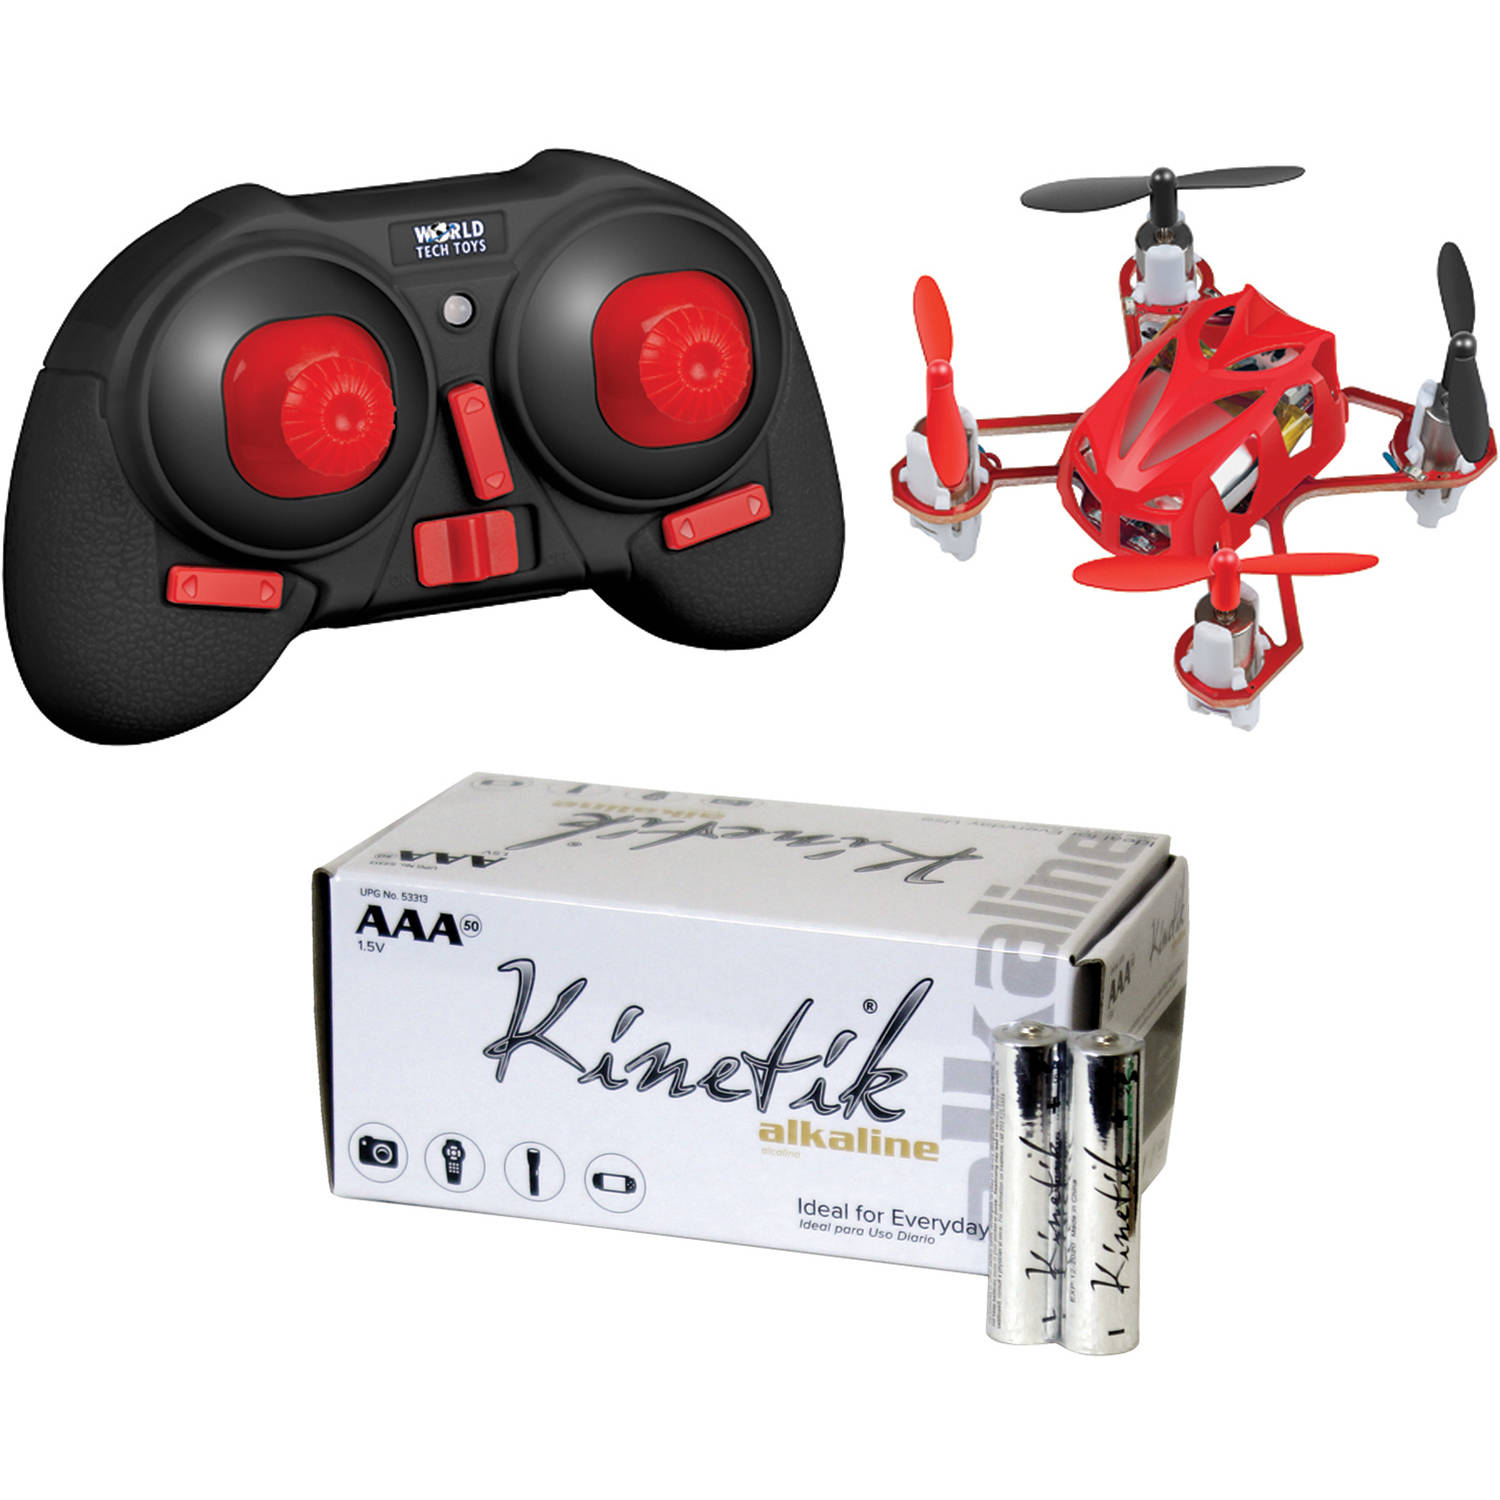 World Tech Toys 34452 4.5-Channel 2.4GHz Supernova Drone and Kinetik AAA Battery Kit, 50 Pack